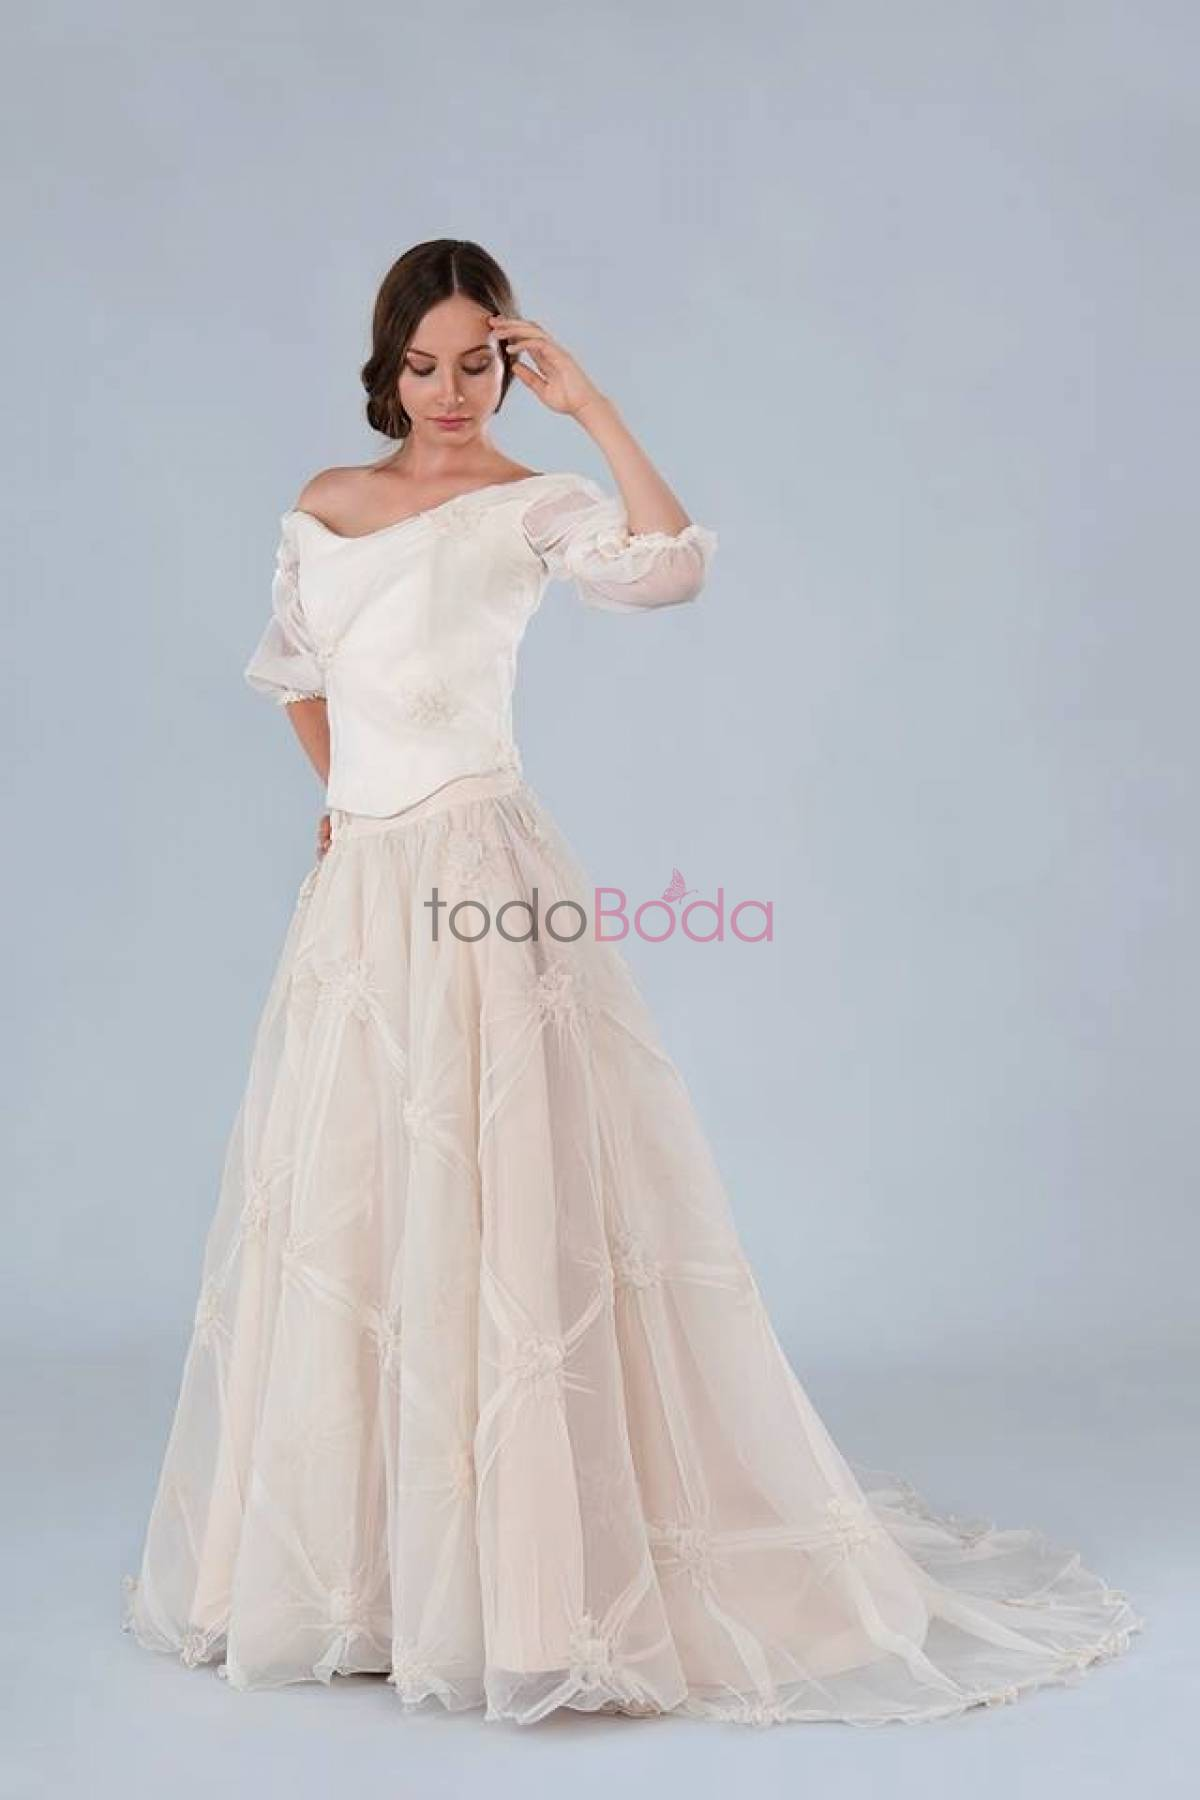 Colorful Vestido Novia Outlet Ideas - Womens Dresses & Gowns ...